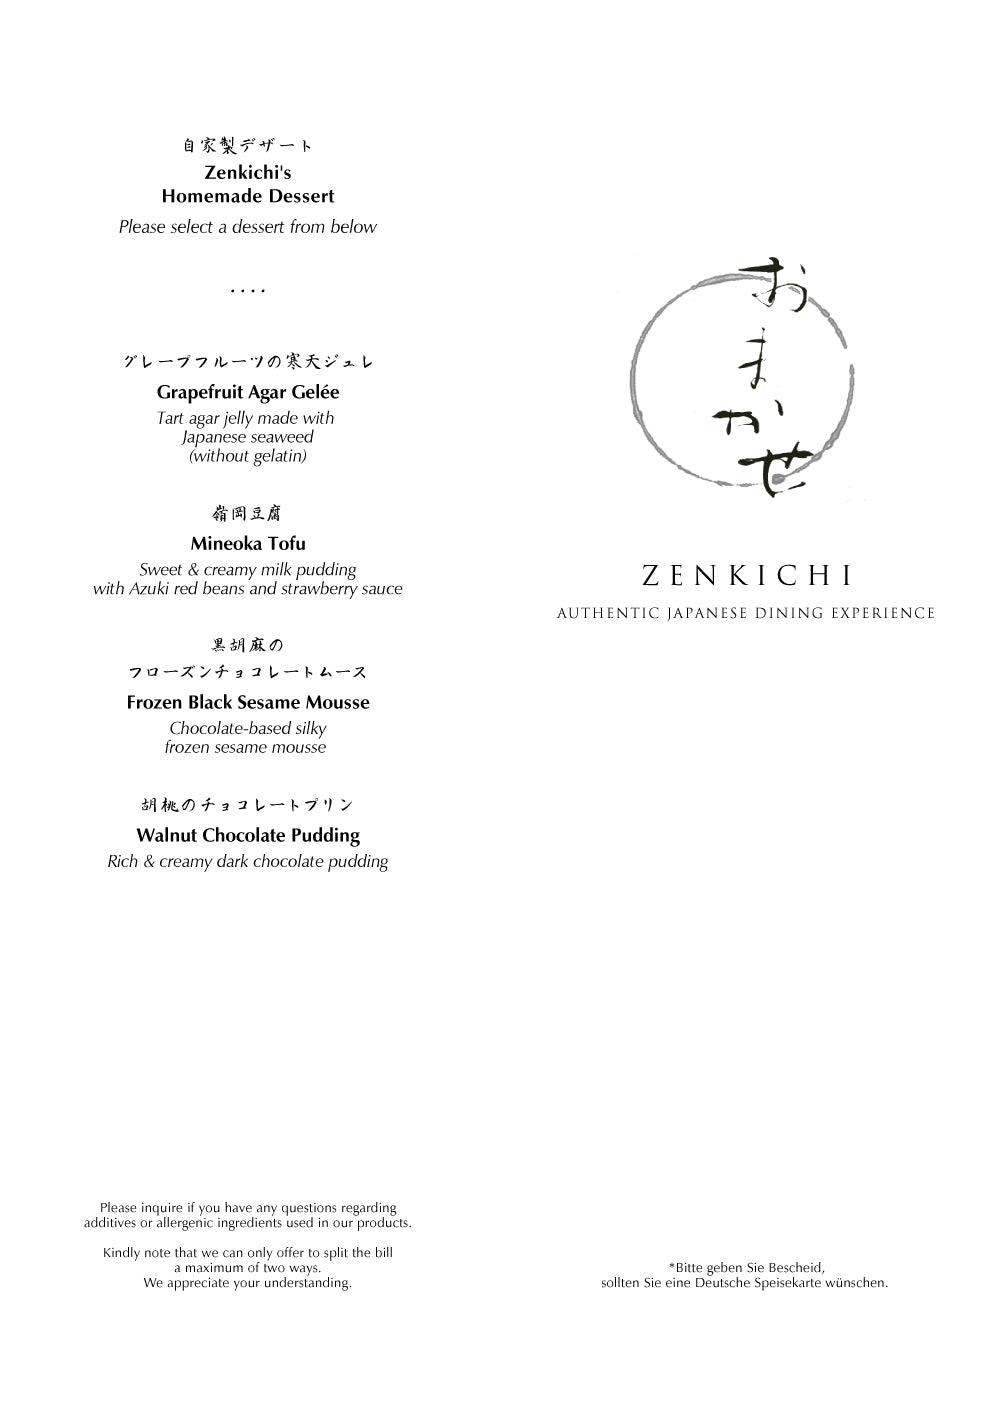 ZENKICHI WINTER OMAKASE MENU